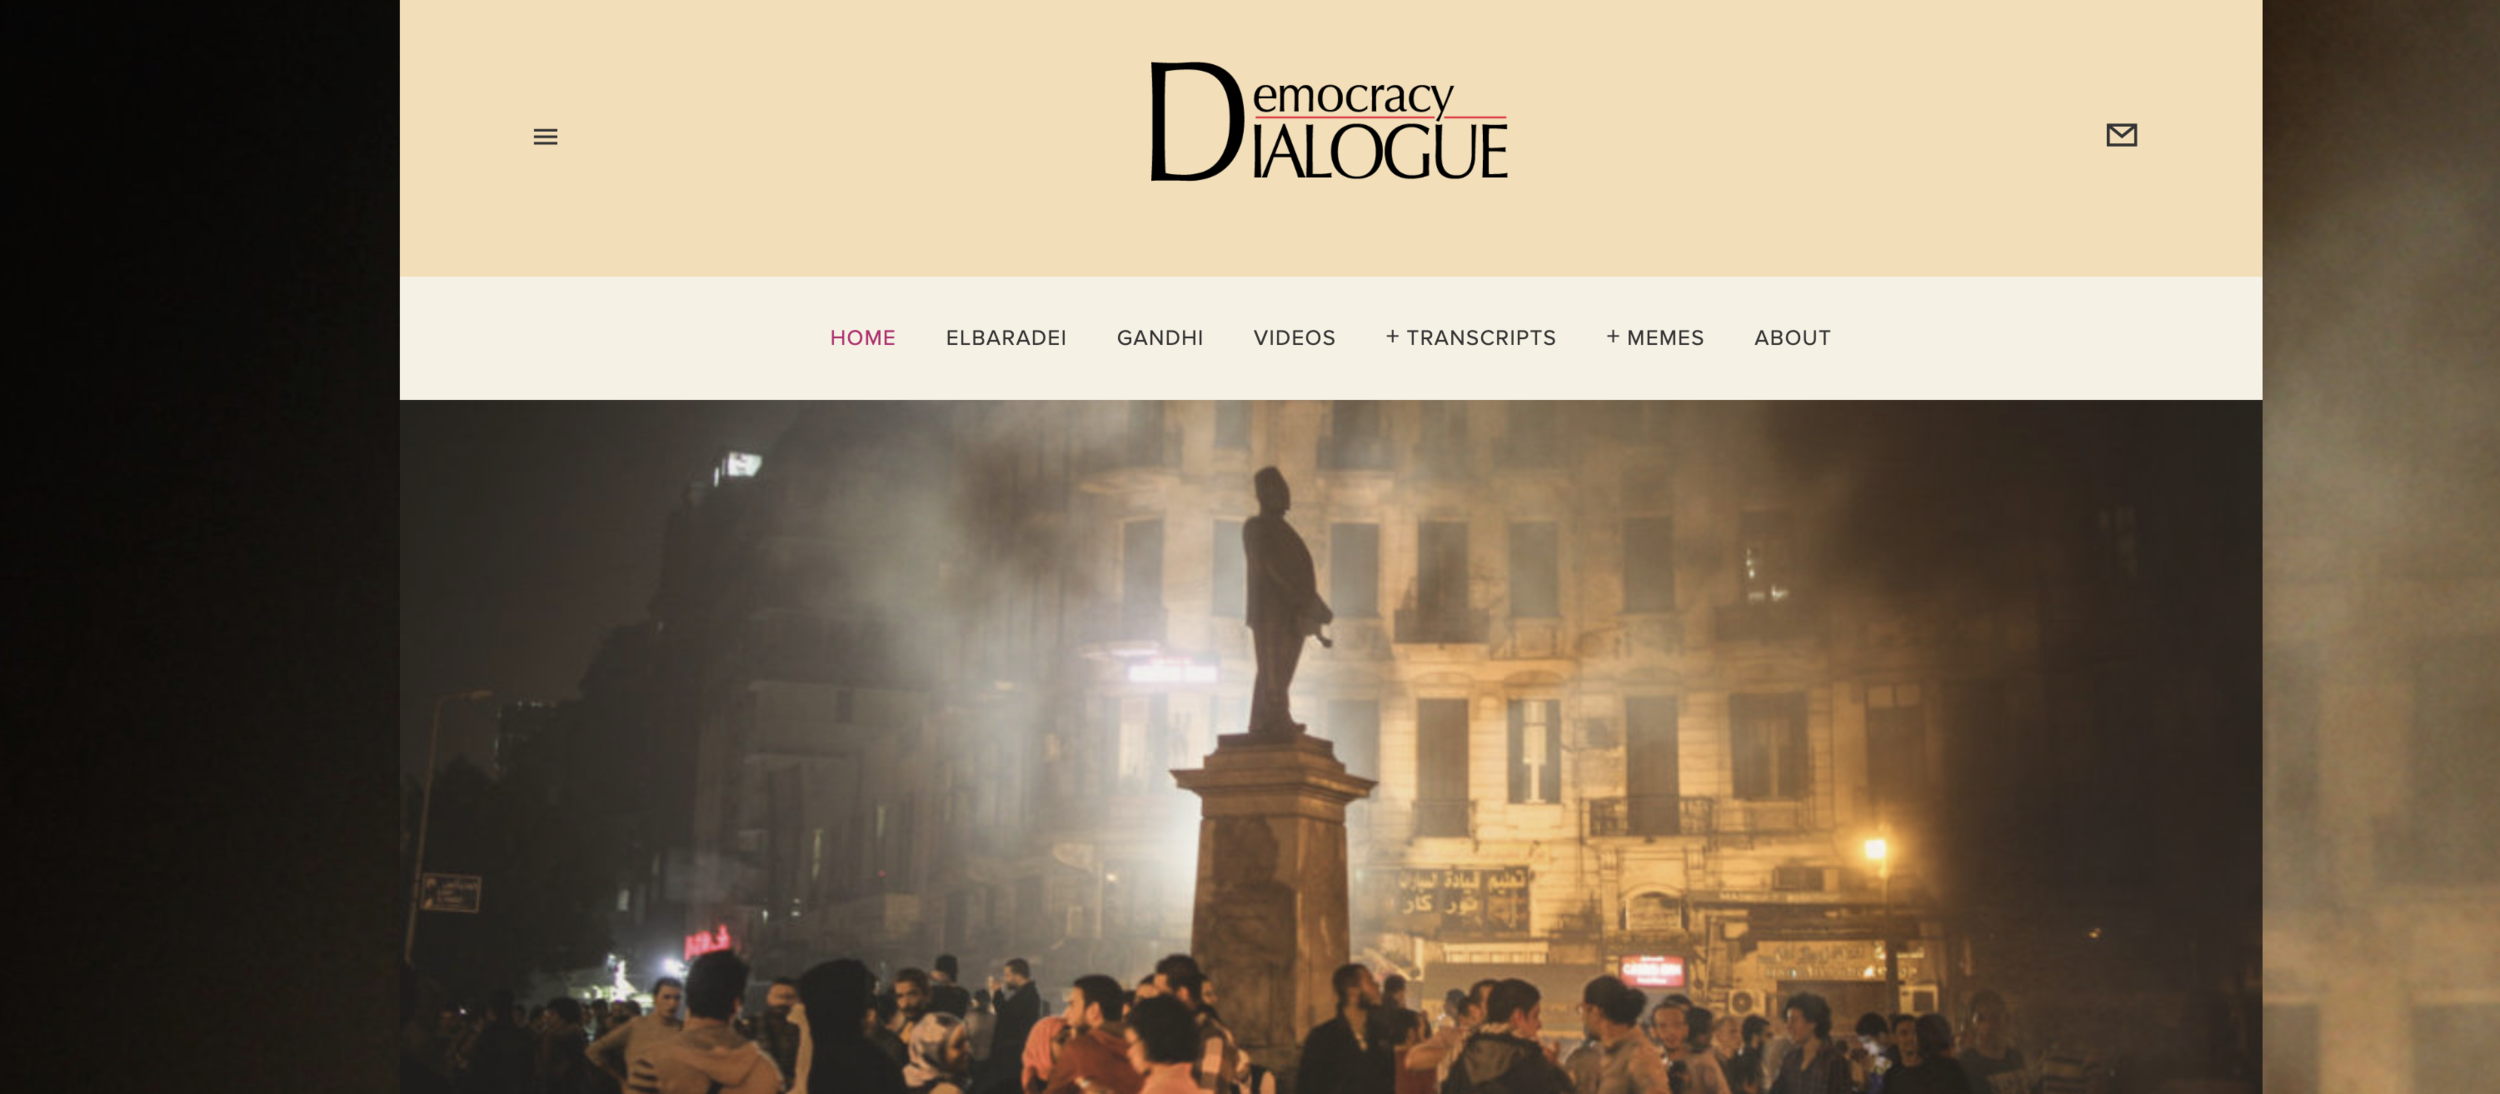 Democracy Dialogue  website: Global conversations inspired by Egypt's 25 January 2011 revolution, featuring Mohamed ElBaradei and Rajmohan Gandhi